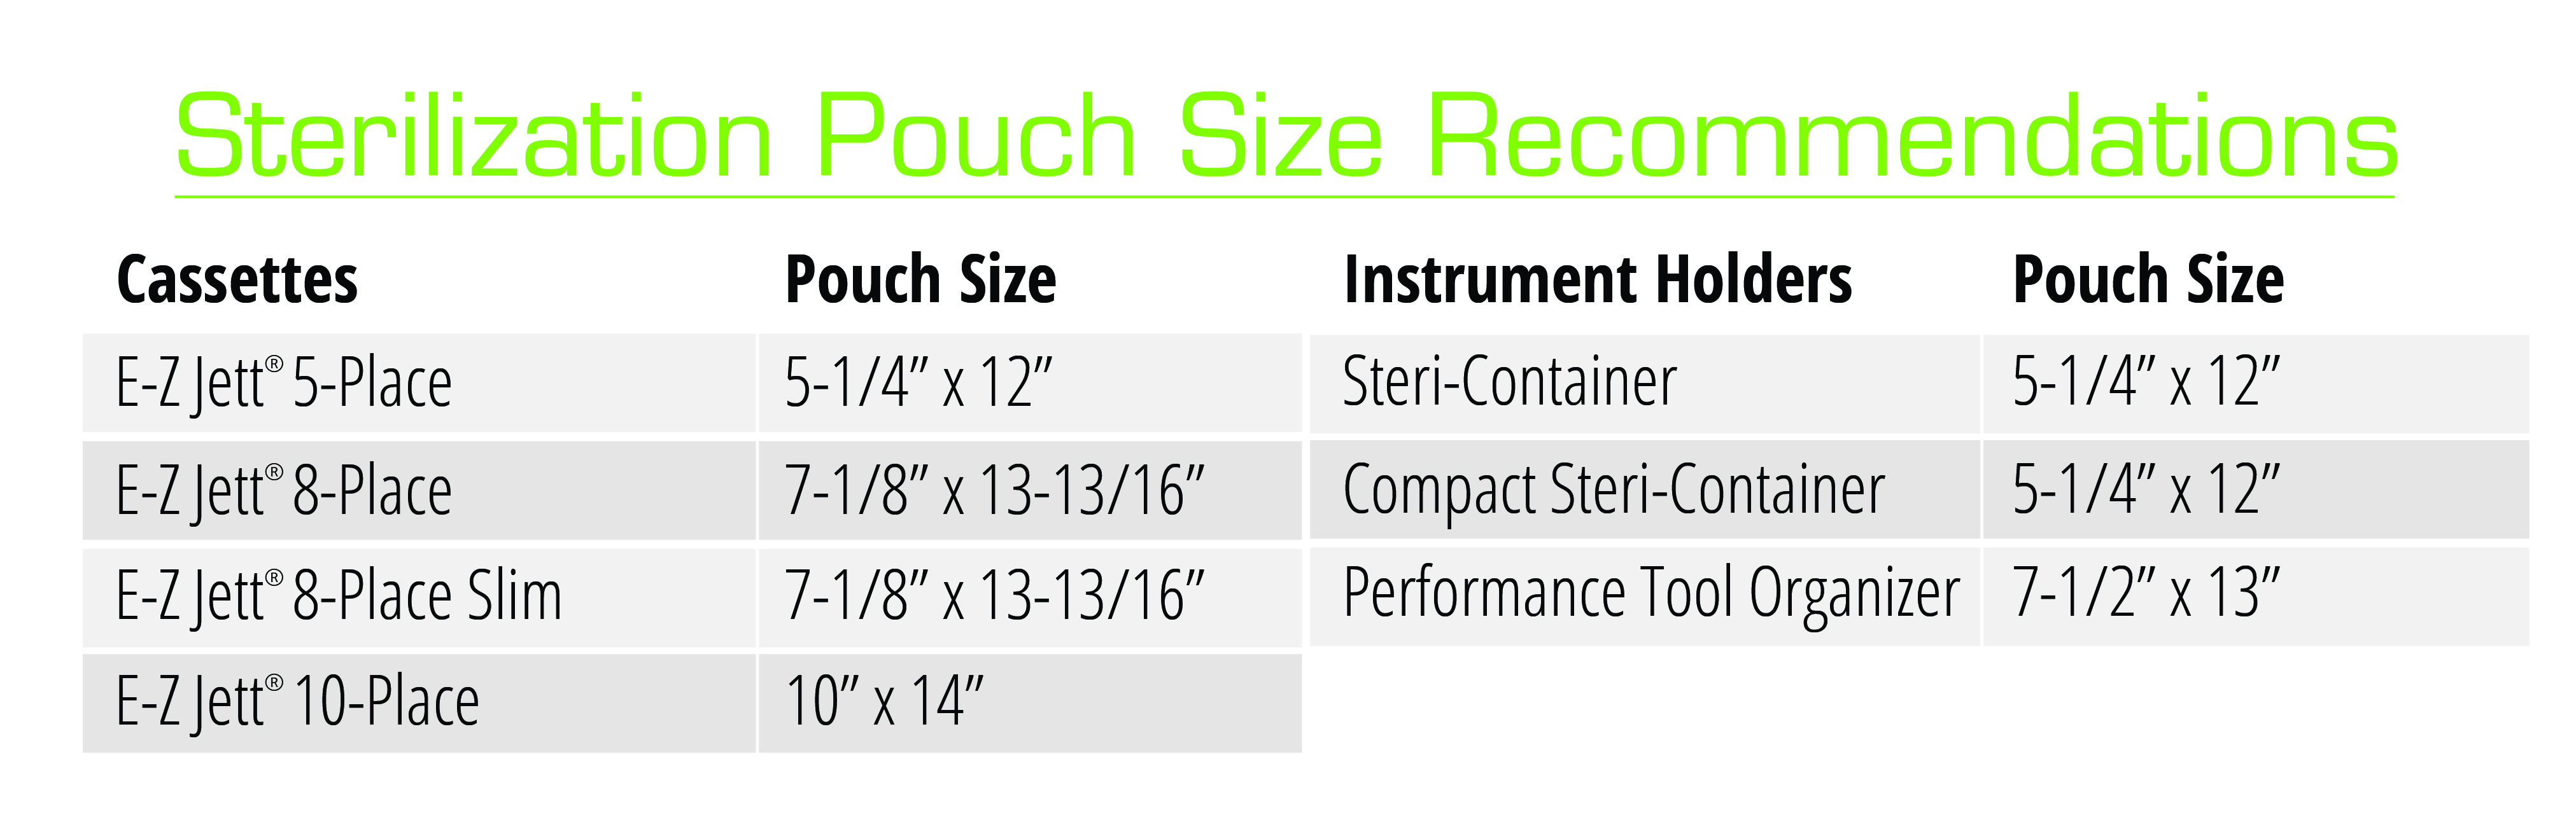 Product_Size_Charts-02.jpg